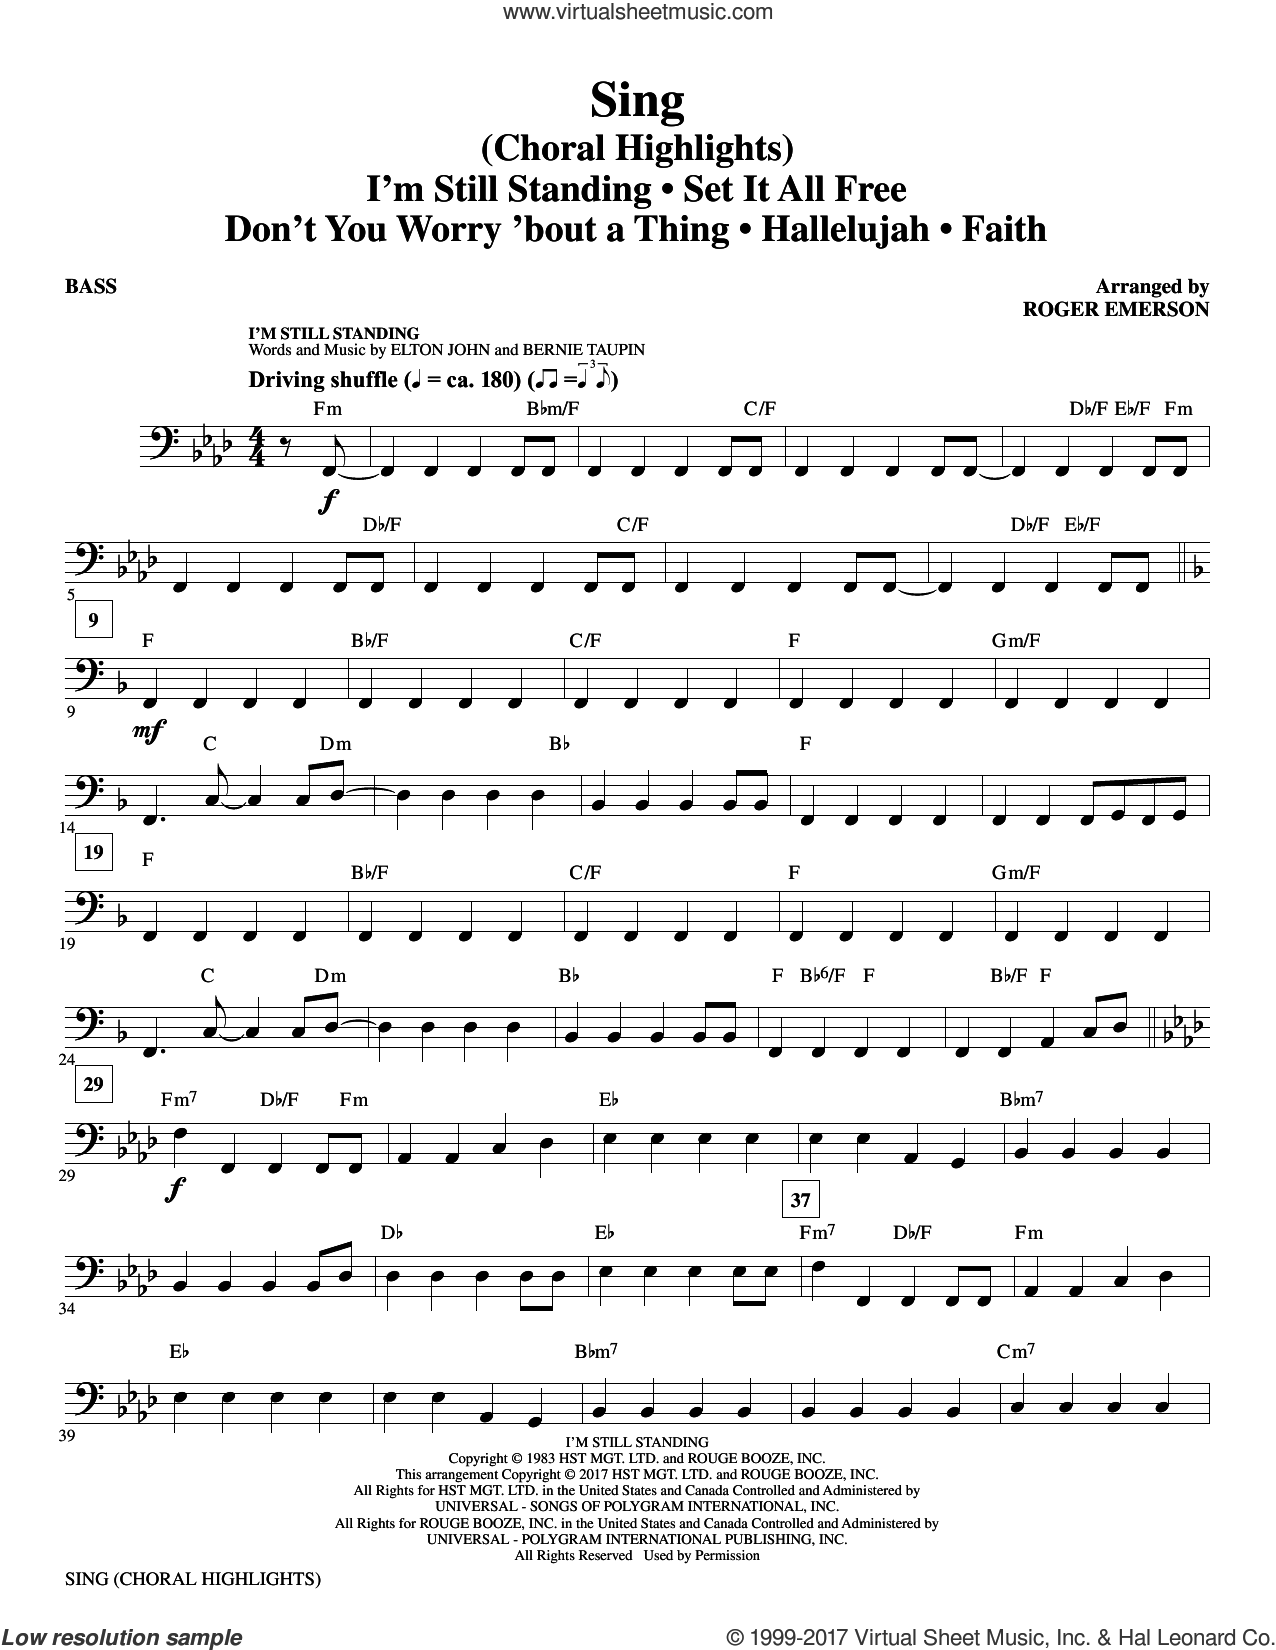 Sing (Choral Highlights) sheet music for orchestra/band (bass) by Leonard Cohen, Roger Emerson, Justin Timberlake & Matt Morris featuring Charlie Sexton and Lee DeWyze, intermediate skill level